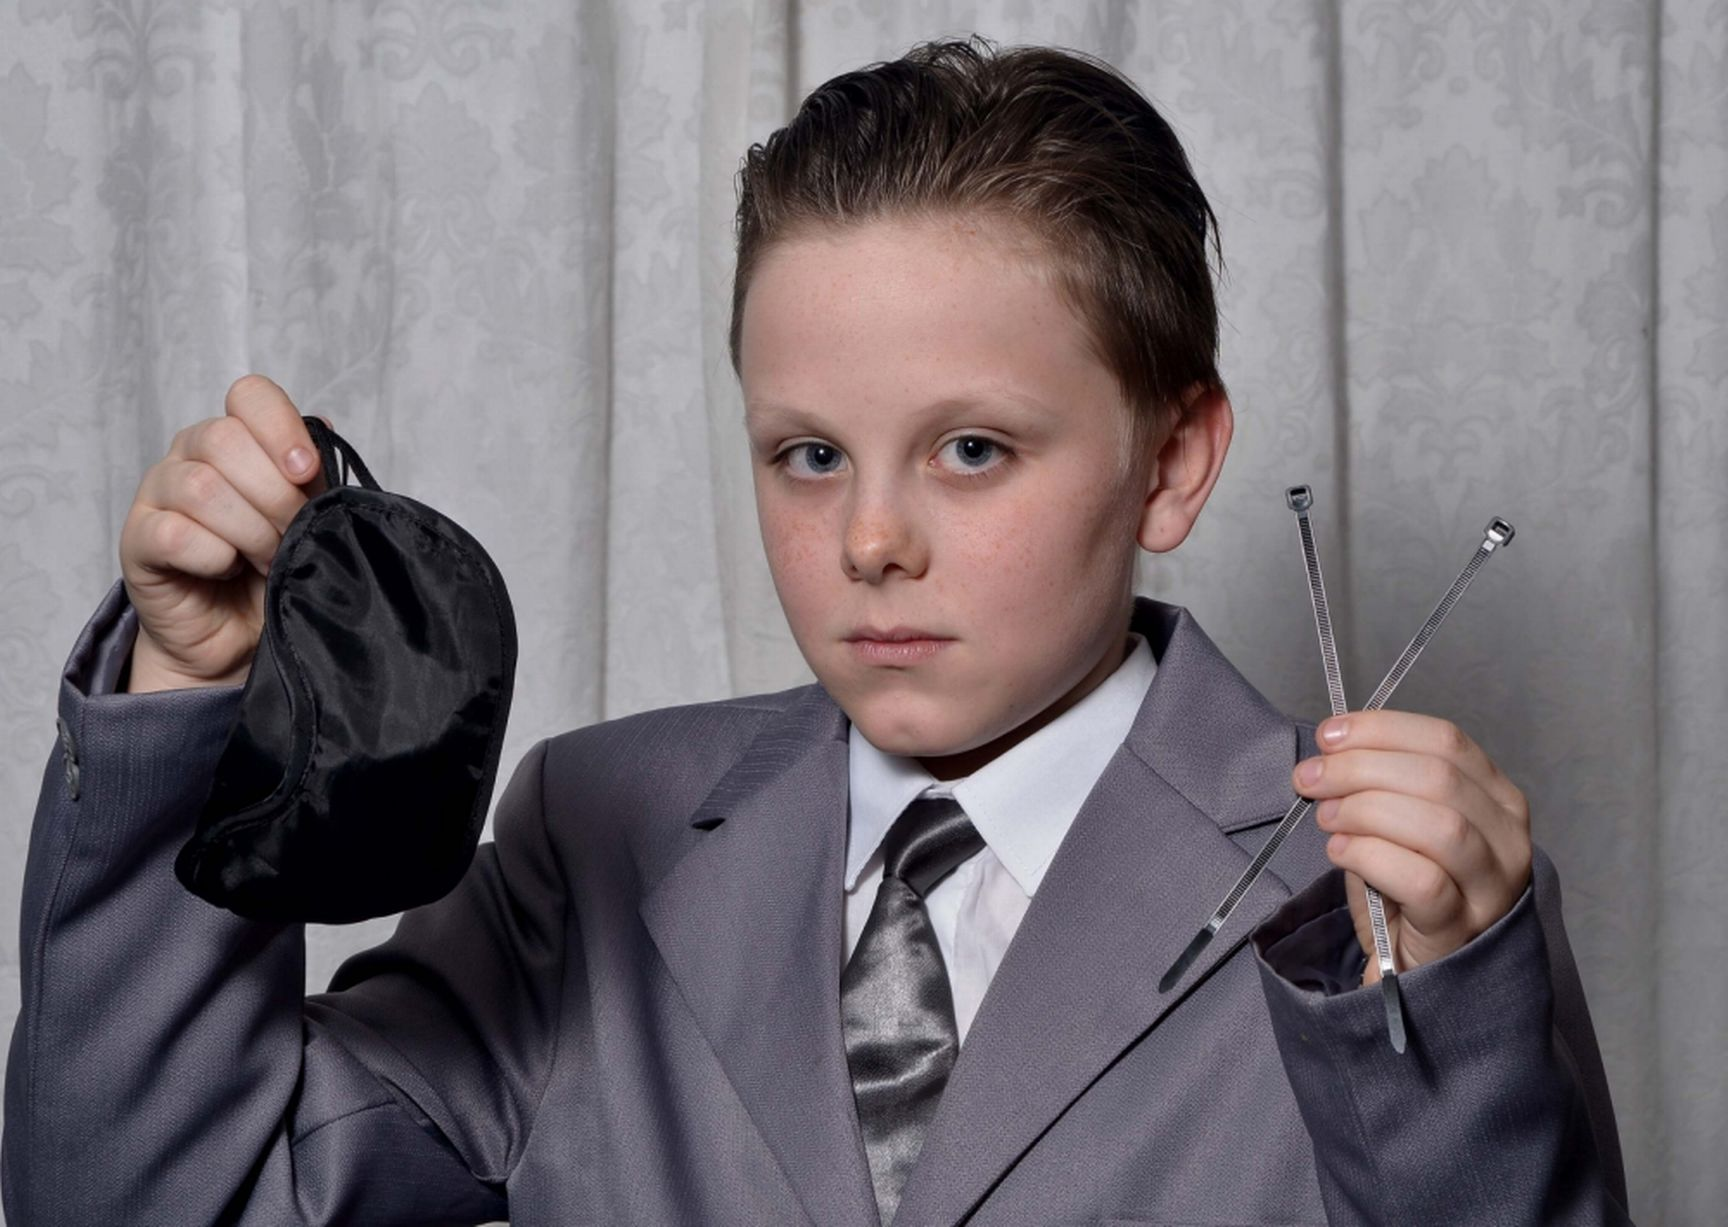 Fifty Shades Of Grey Costume Lands Schoolboy In Trouble Newsmobile